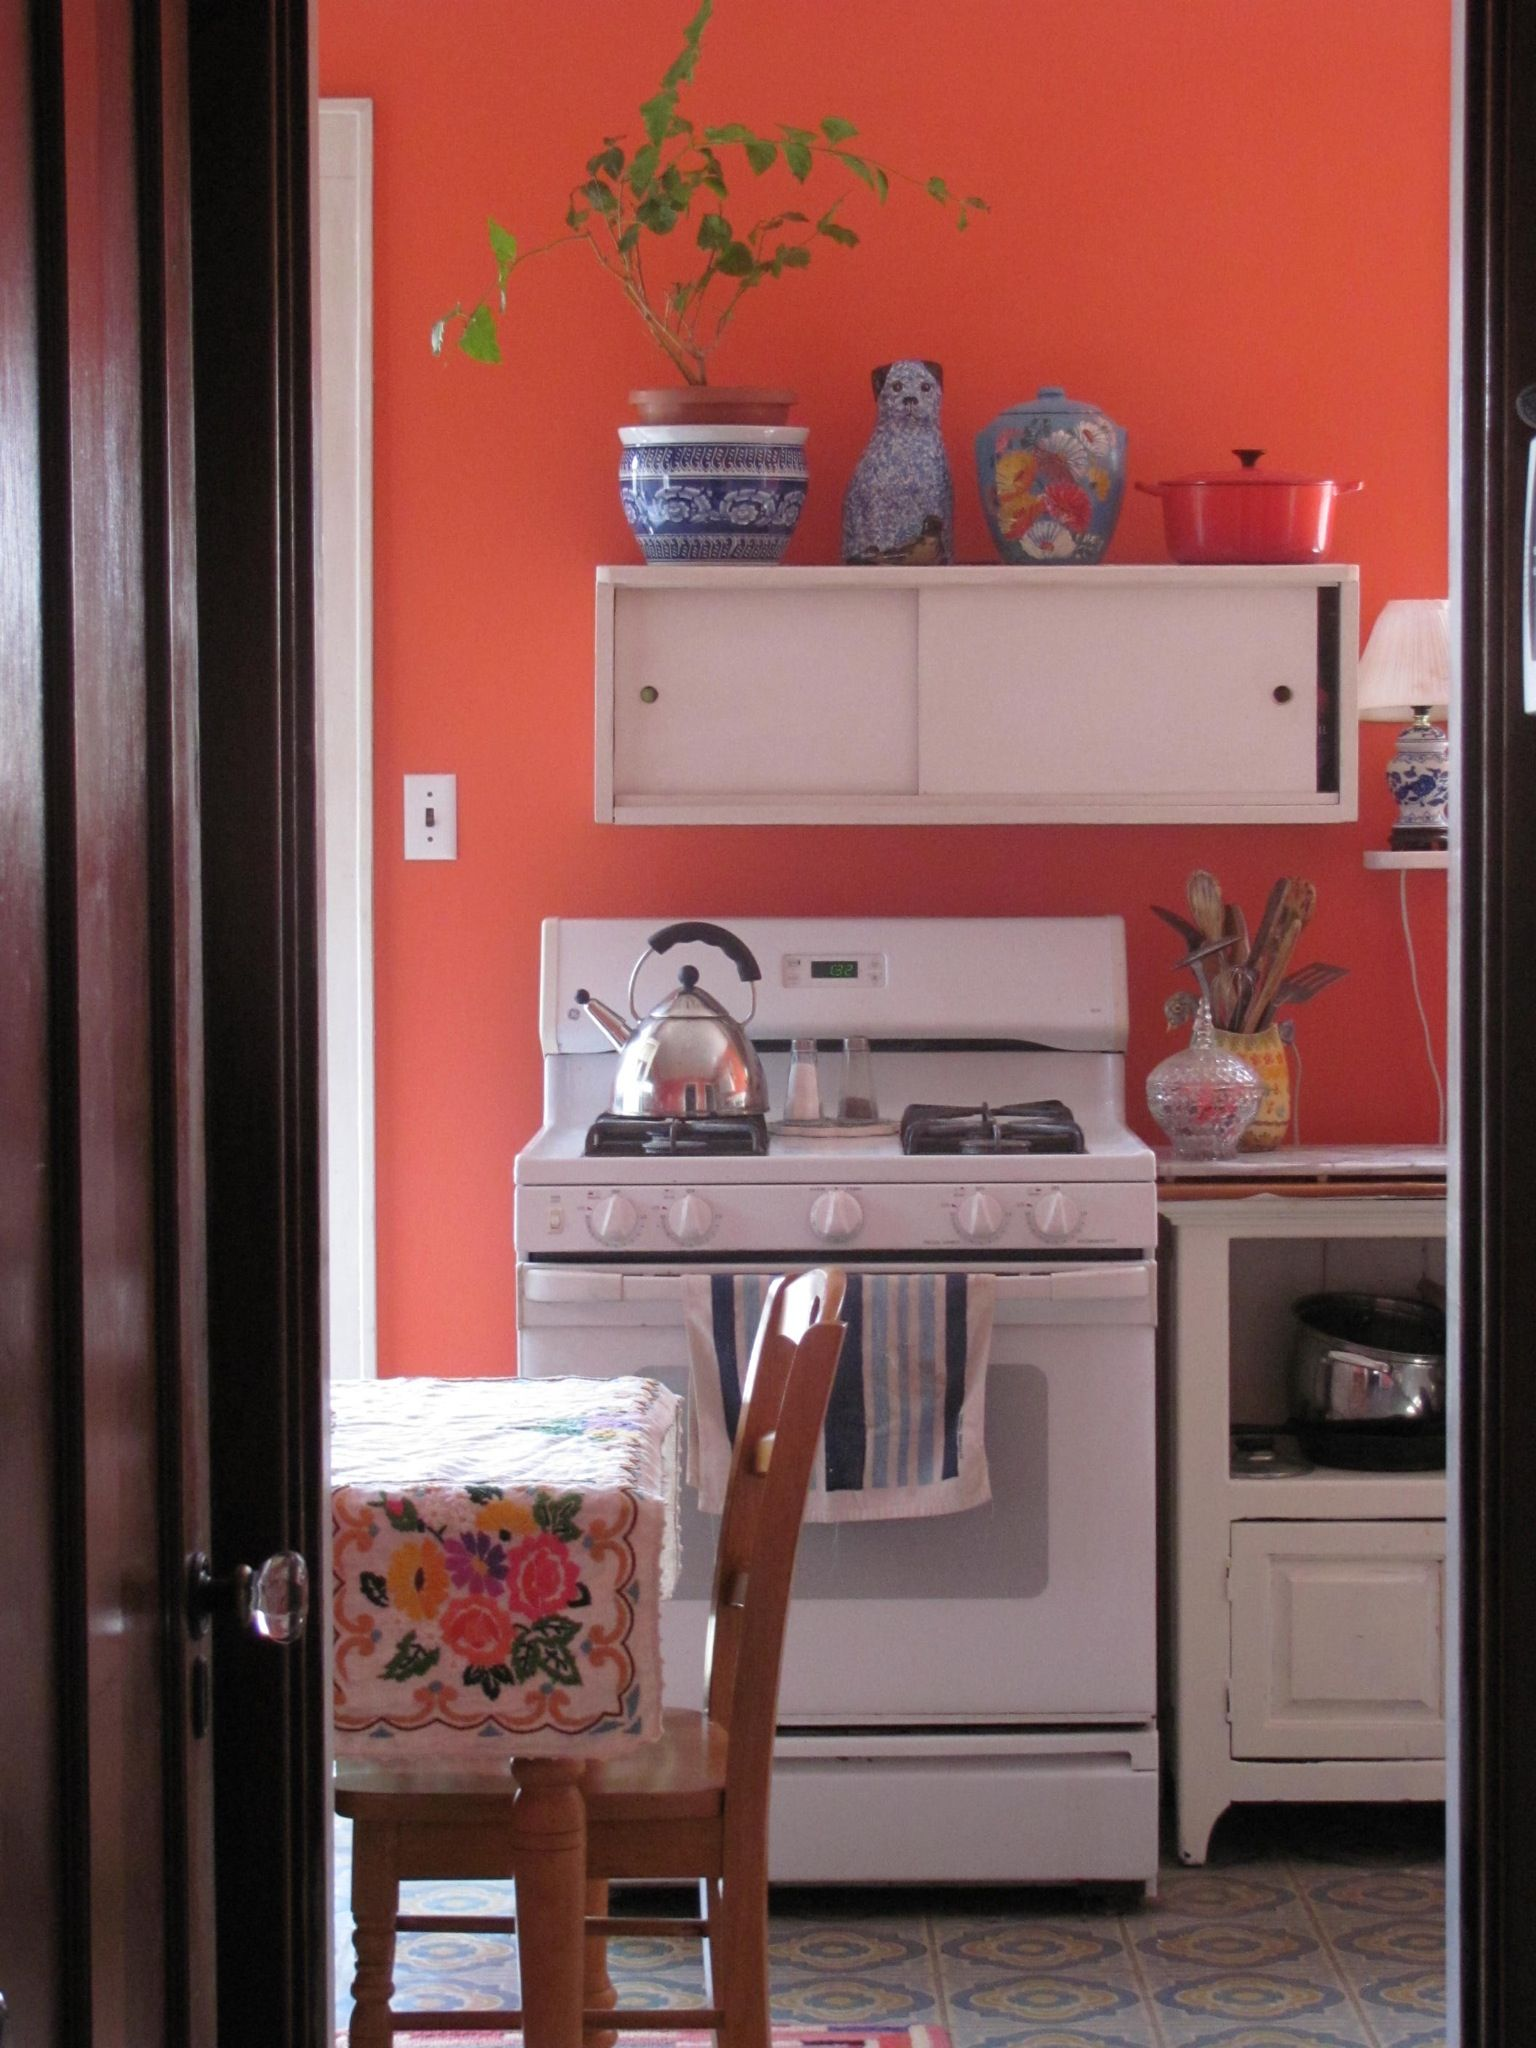 Coral kitchen walls with white cabinets orange kitchen walls coral - Sherwin Williams Daring My Kitchen Walls Won T Be This Saturated But There S A Good Feeling In This Room With The White Stove And Printed Tablecloth